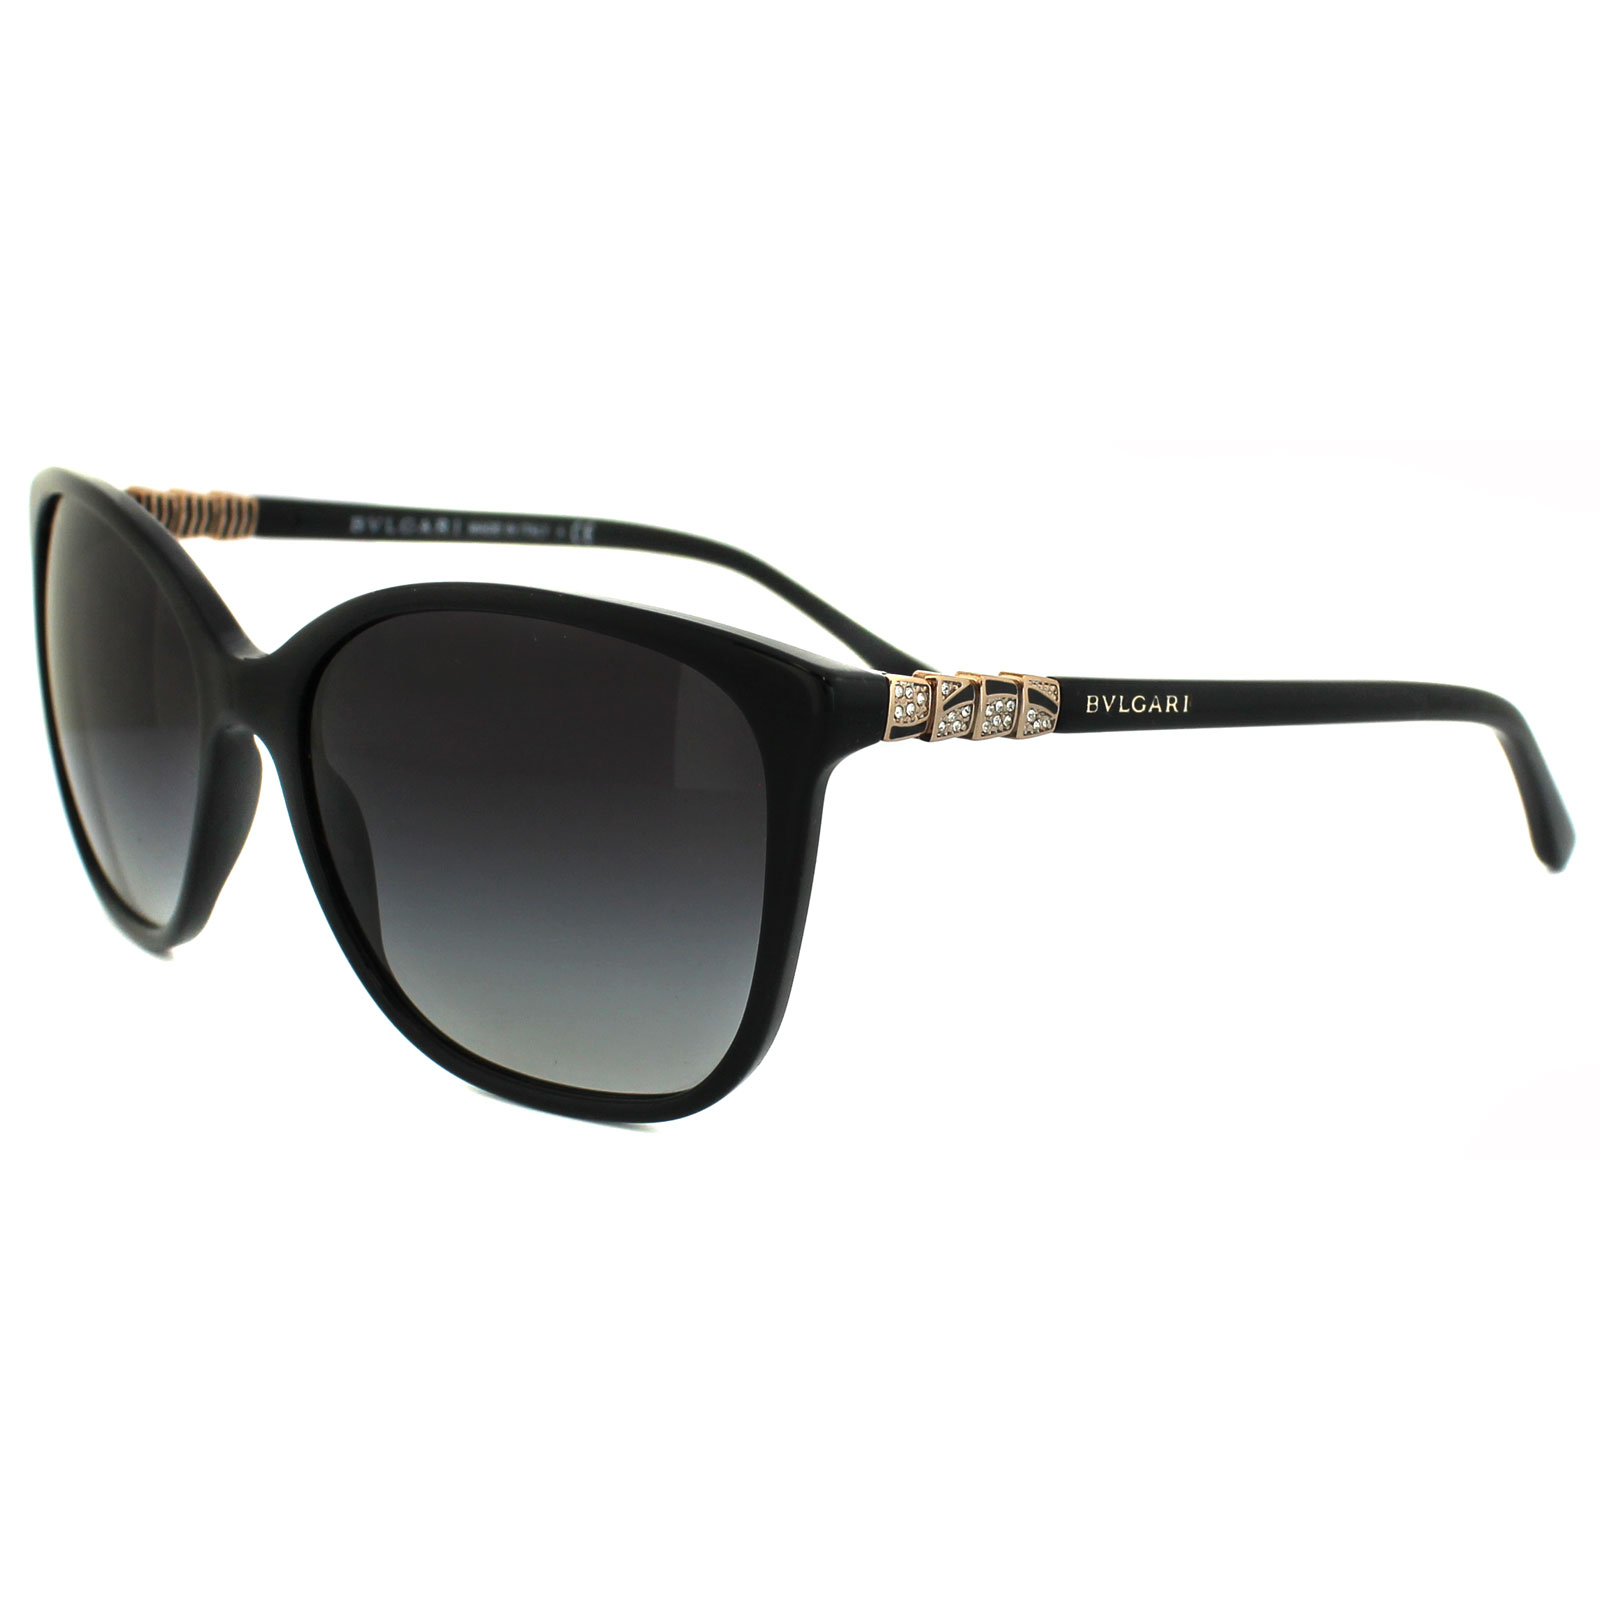 Cheap Bvlgari 8152b Sunglasses Discounted Sunglasses